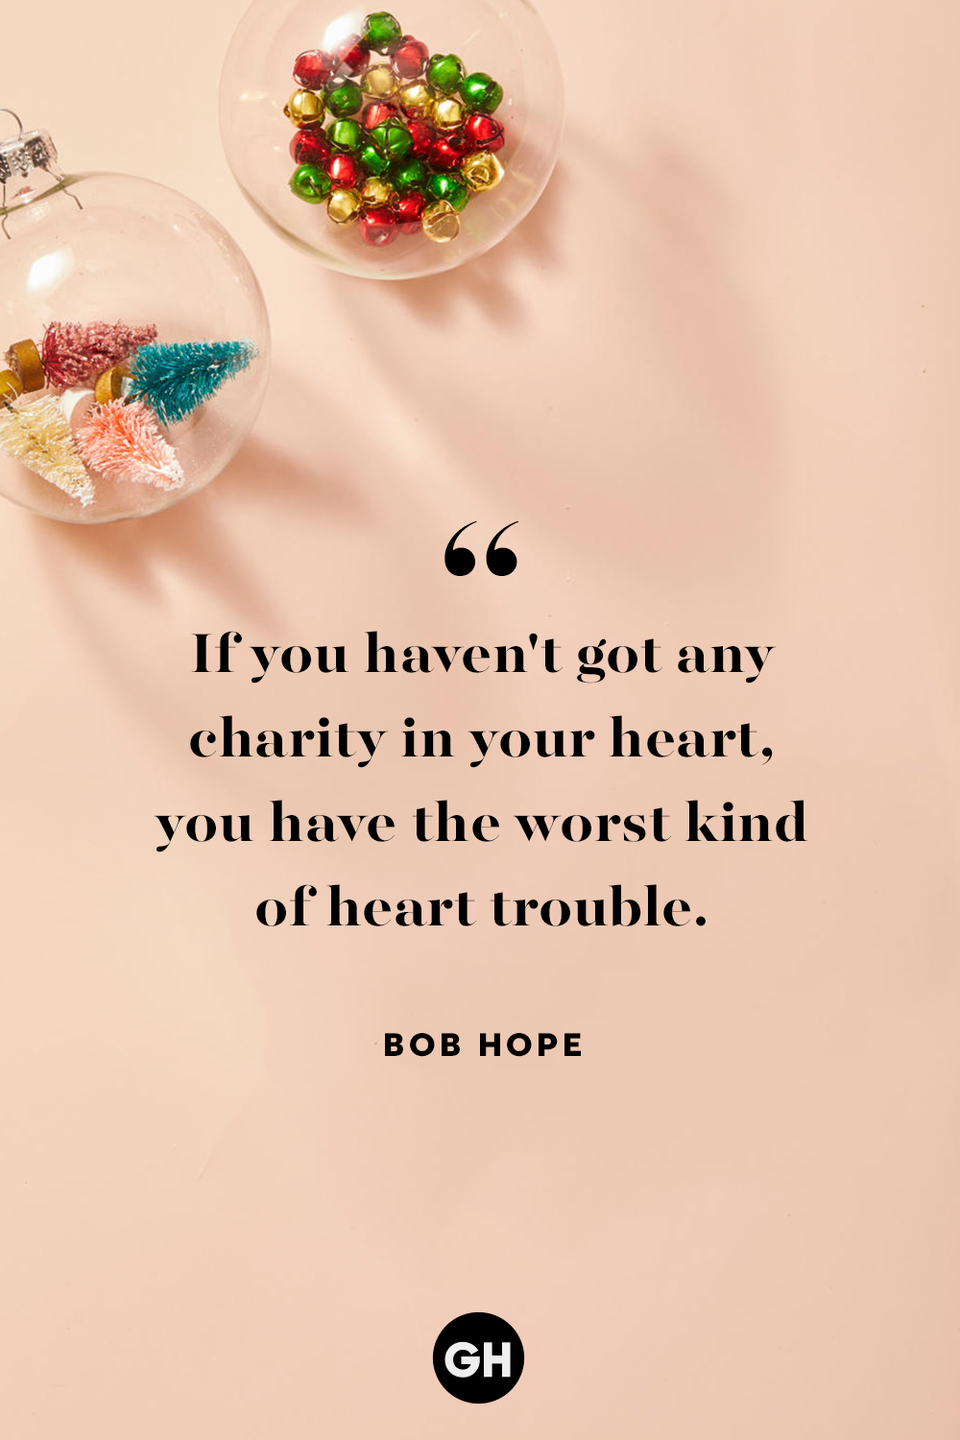 <p>If you haven't got any charity in your heart, you have the worst kind of heart trouble.</p>